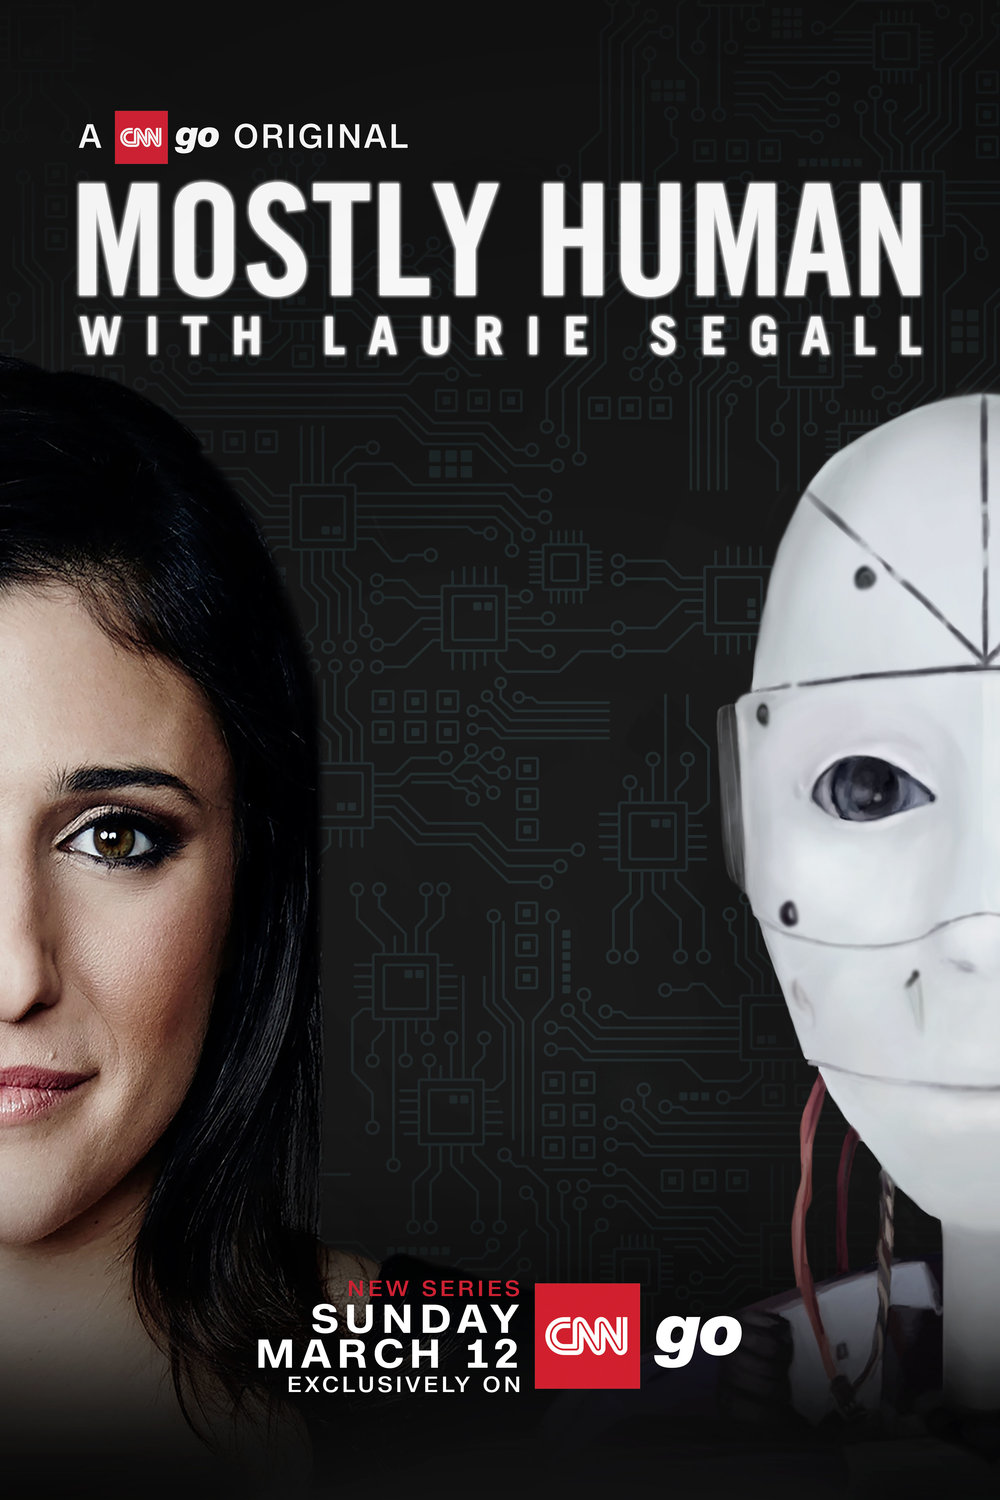 MOSTLY-HUMAN-POSTER.jpg